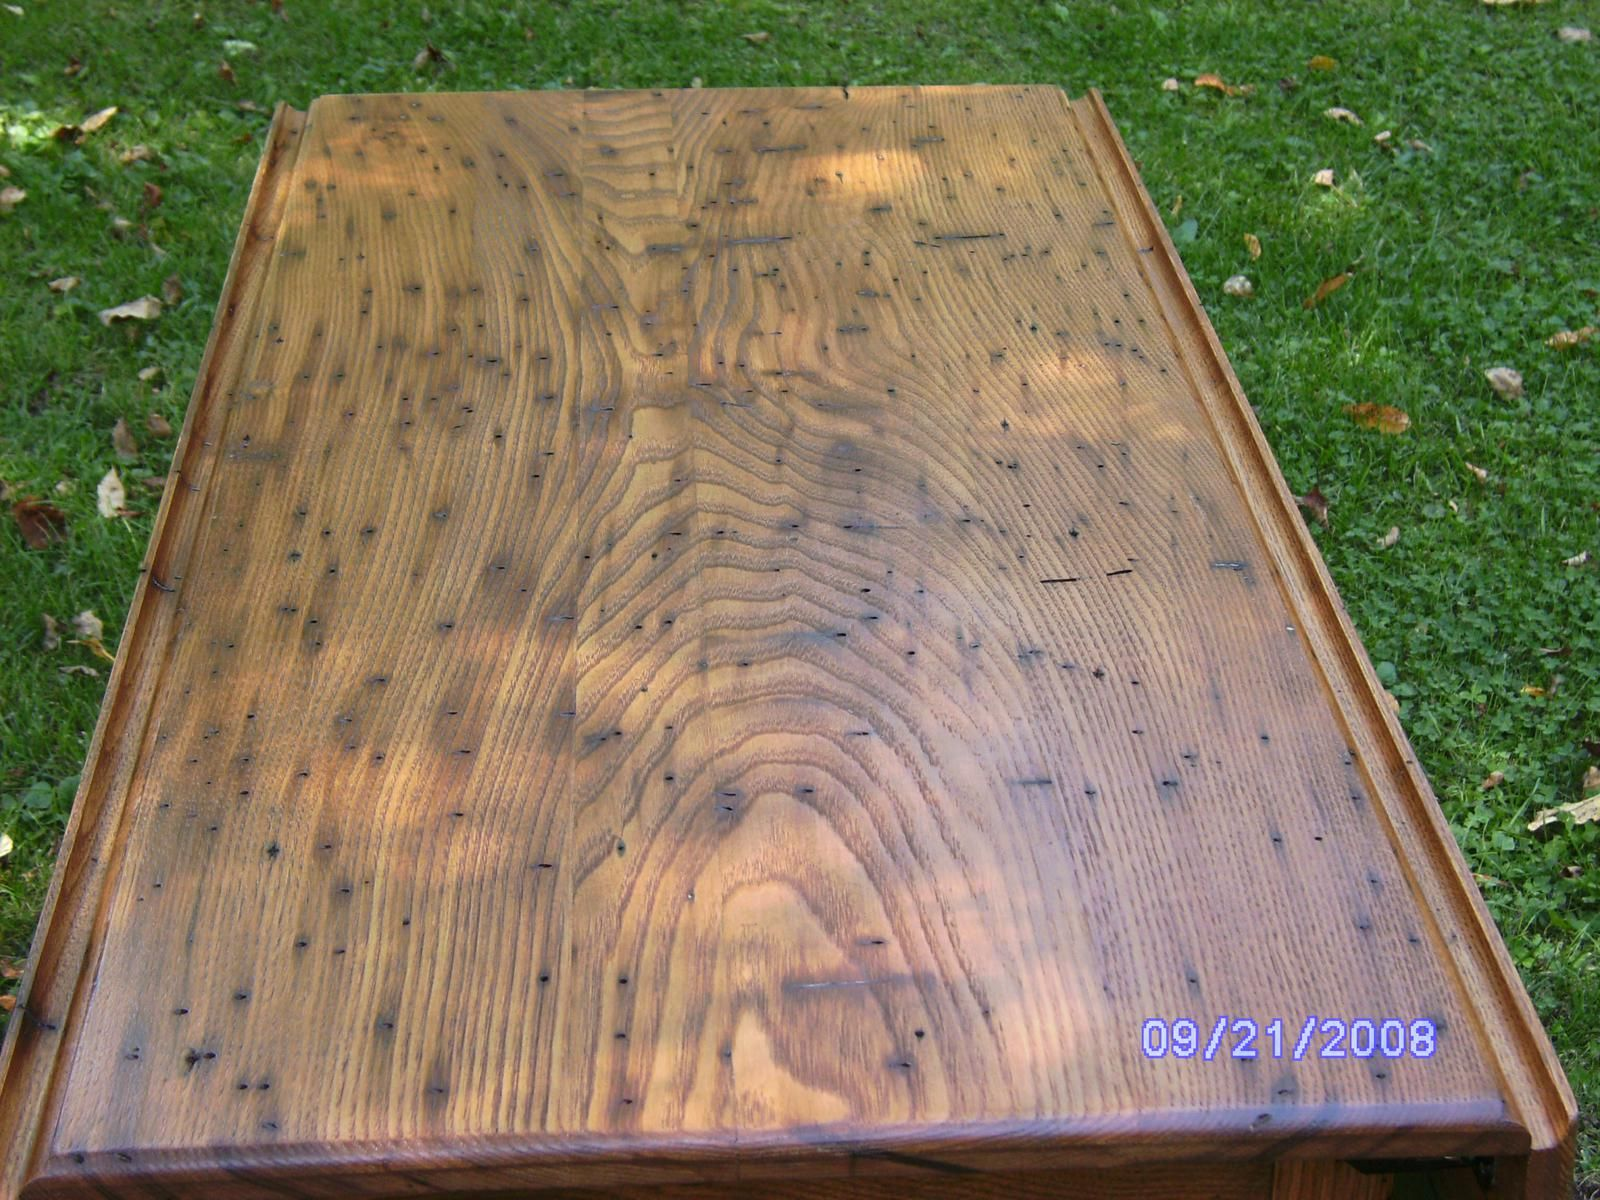 Custom Made Wormy Chestnut Drop Leaf Table by Short Mtn  : 25589266 from www.custommade.com size 1600 x 1200 jpeg 316kB